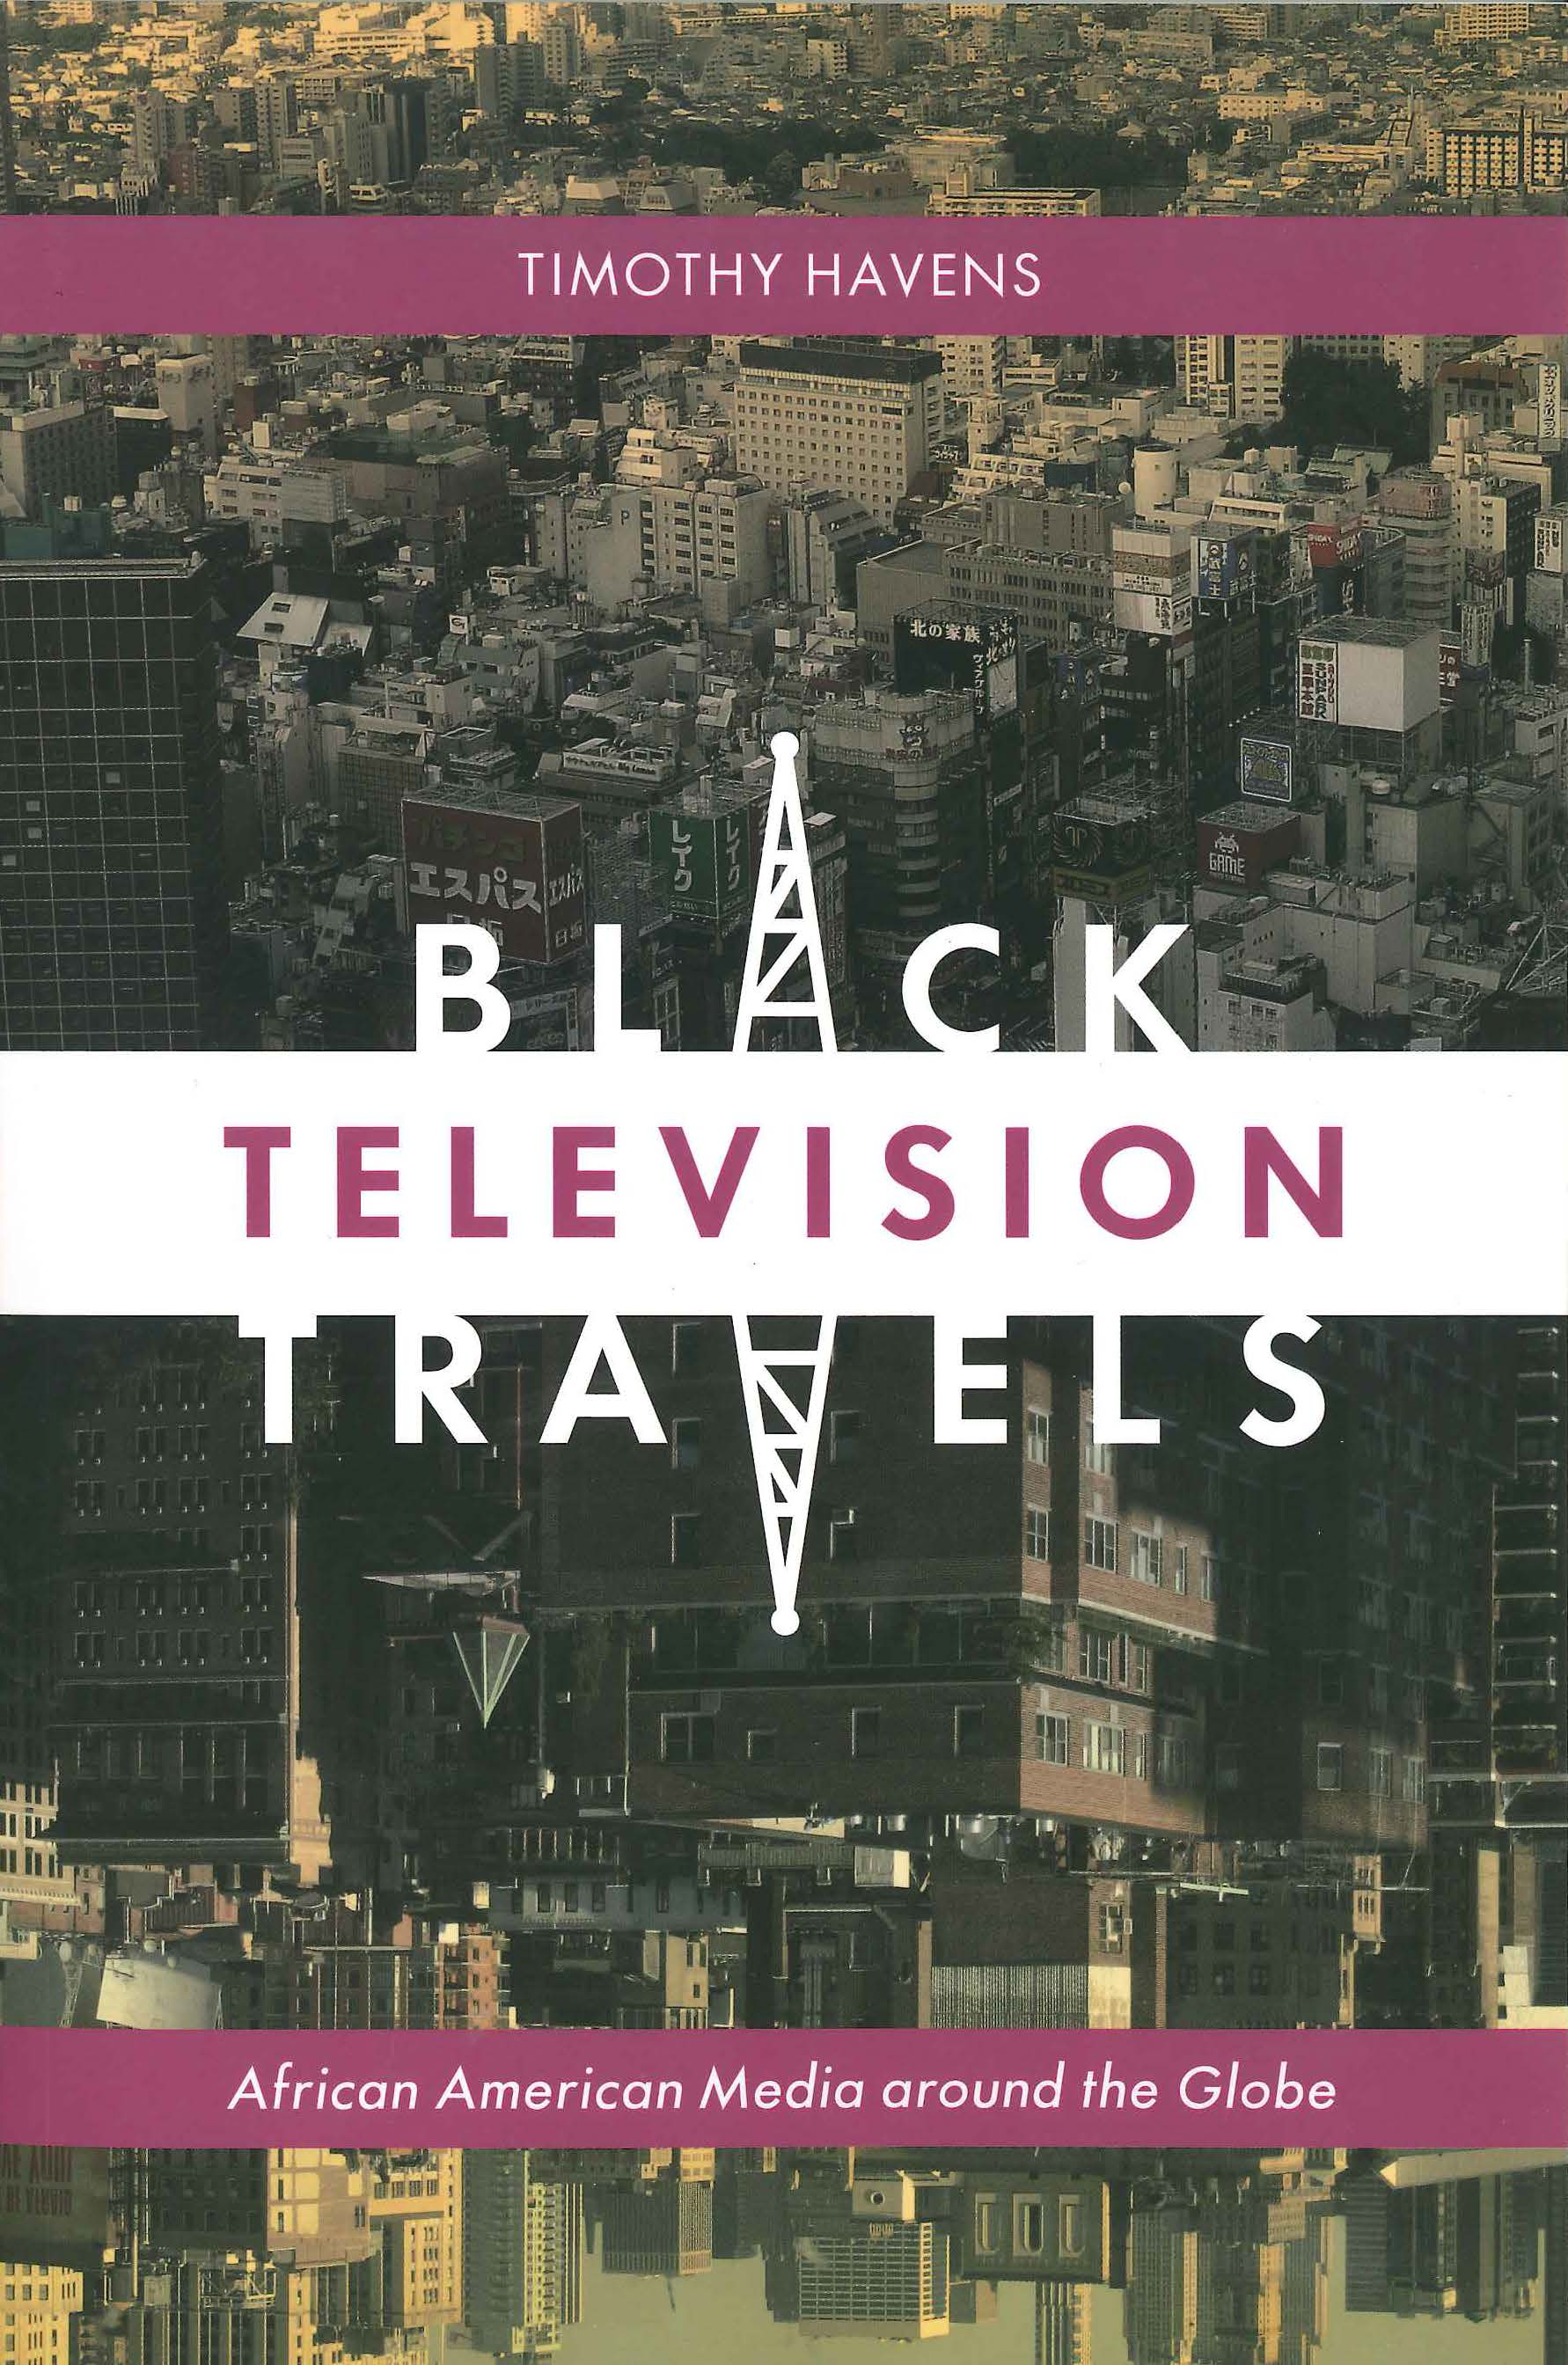 the representation of african americans on television and media What are the problems with representations of ethnic minorities in american media how has this changed over time update cancel answer wiki 5 answers karol zhang.